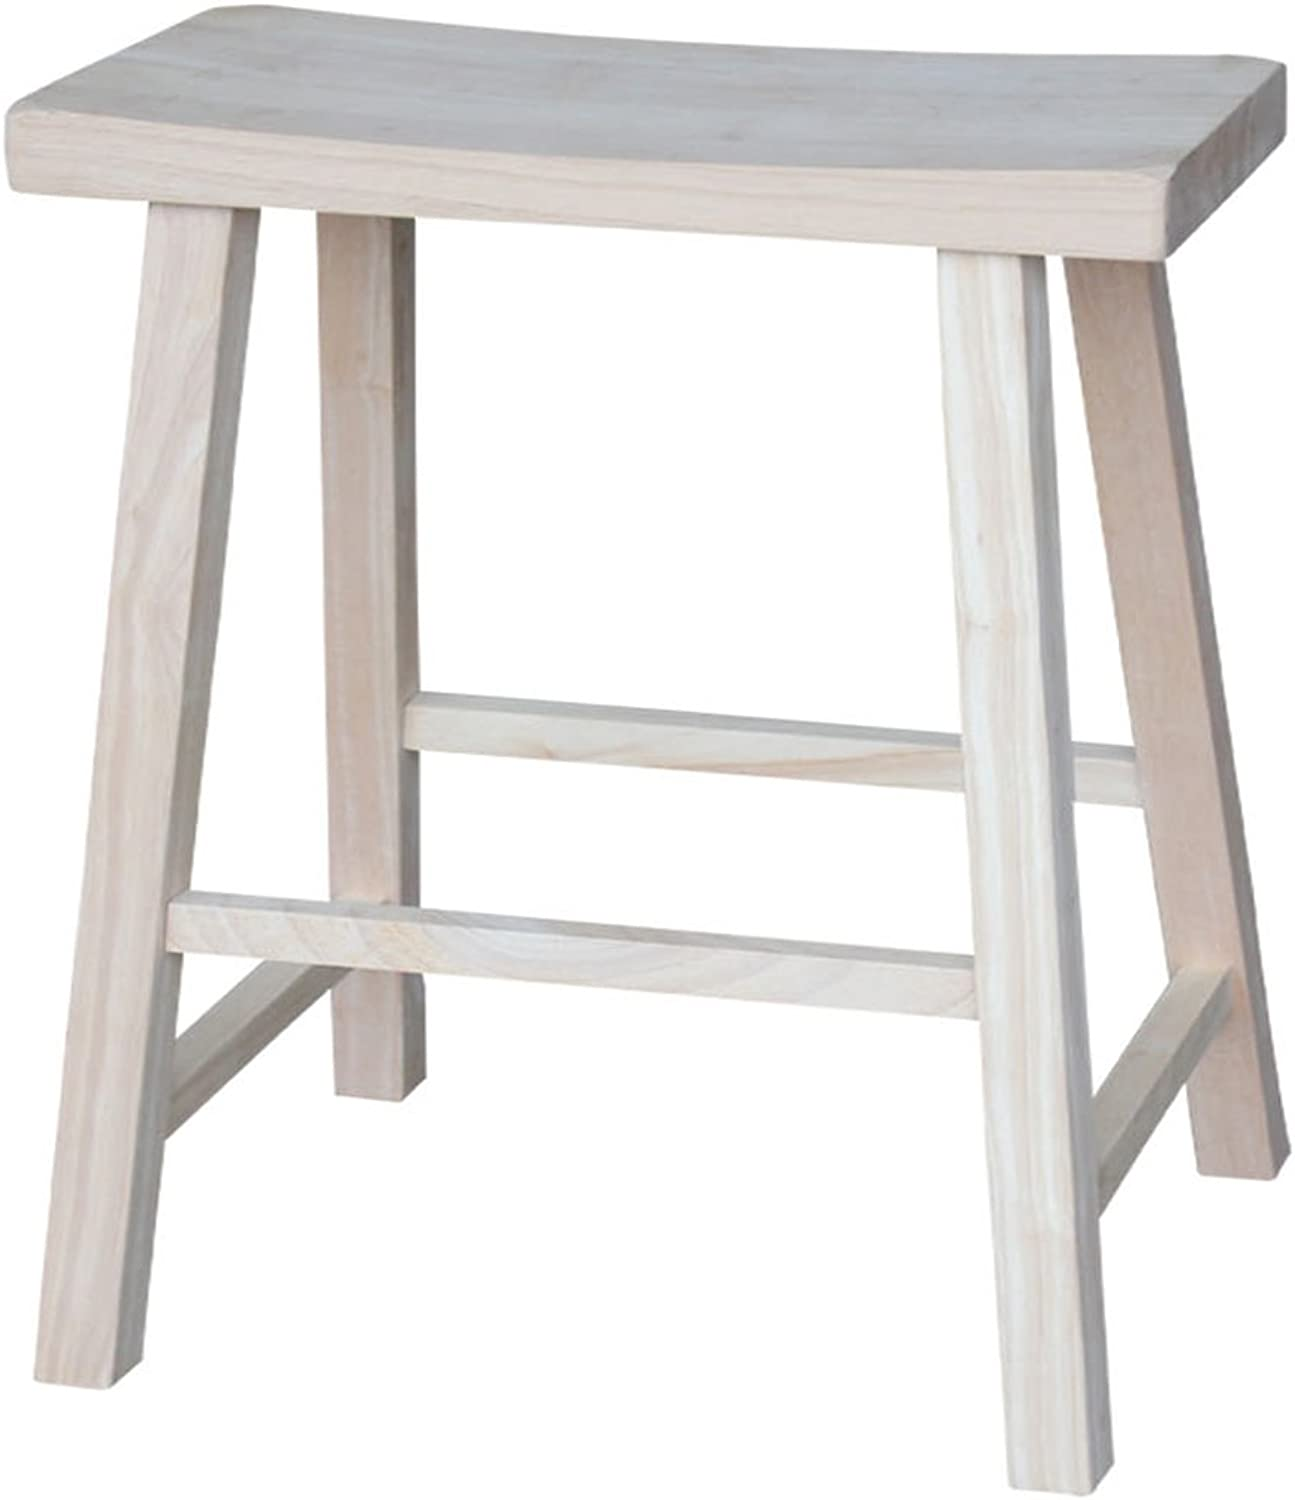 International Concepts 1S-682 24-Inch Saddle Seat Stool, Unfinished